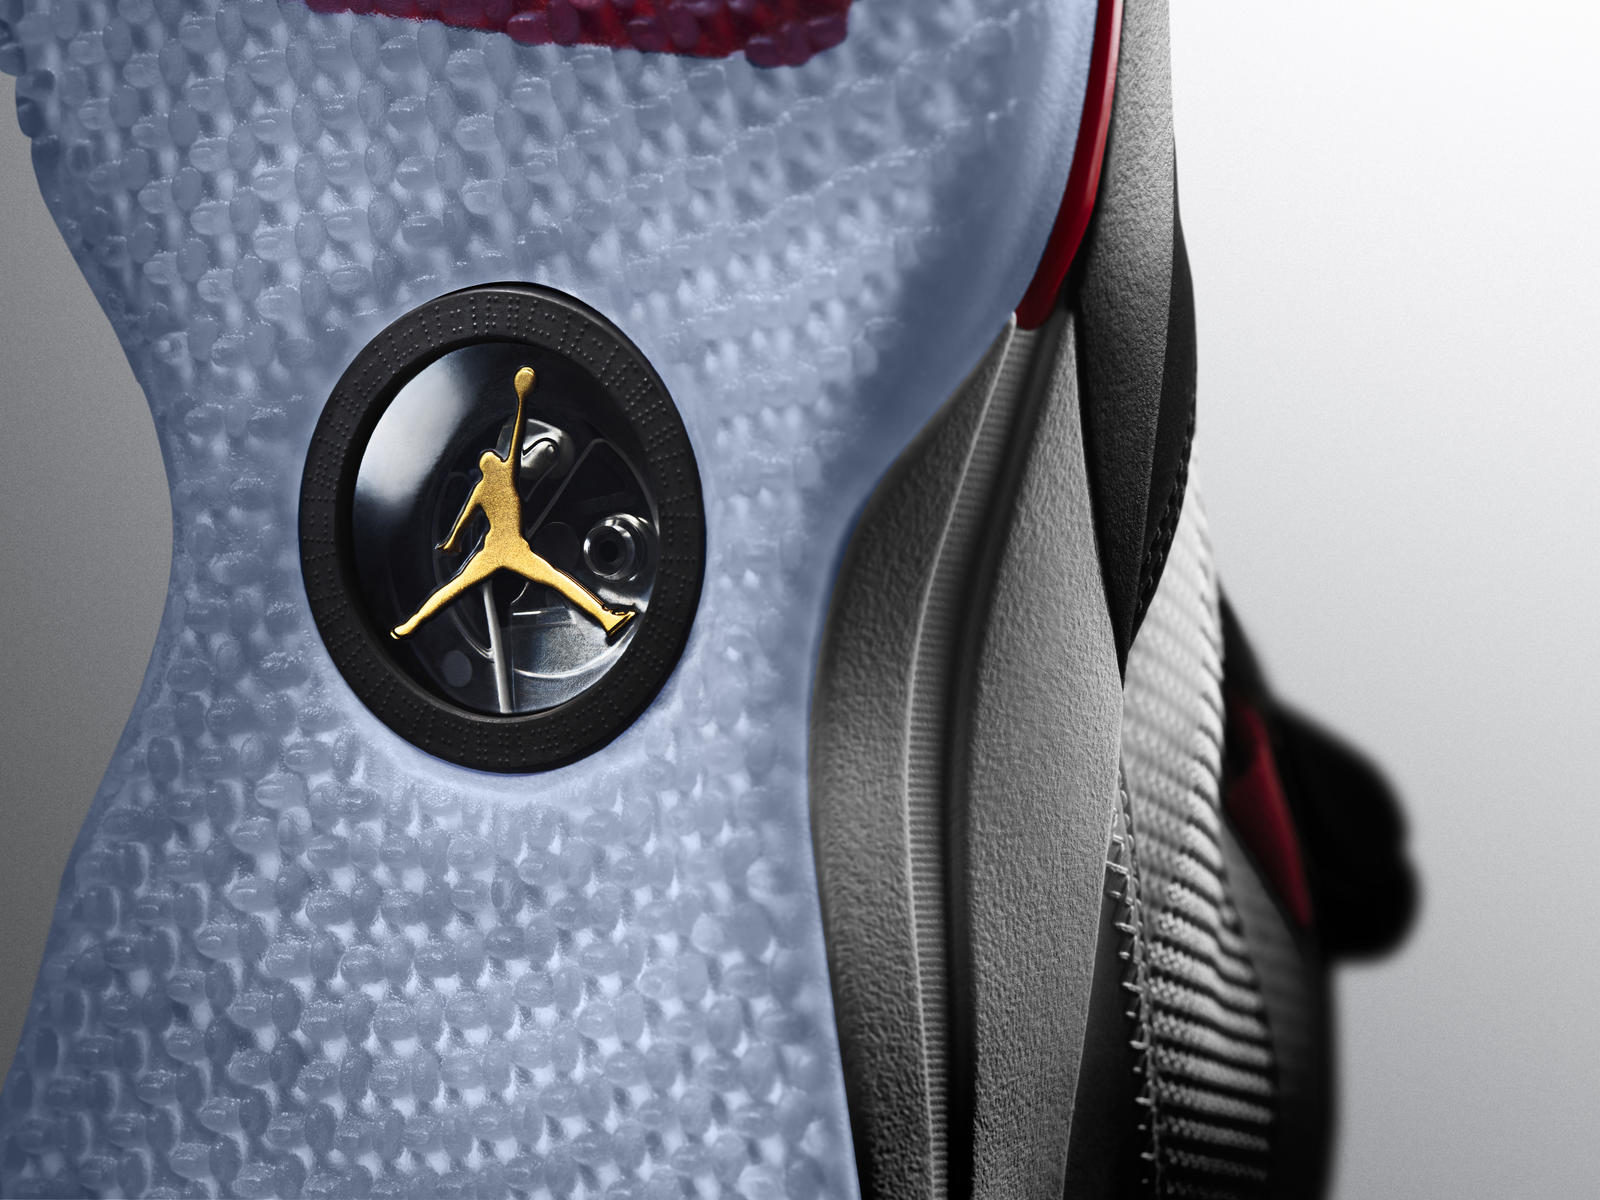 b8817f1d1b7 The Nike FastFit mechanism is visible under the arch of the Air Jordan  XXXIII.